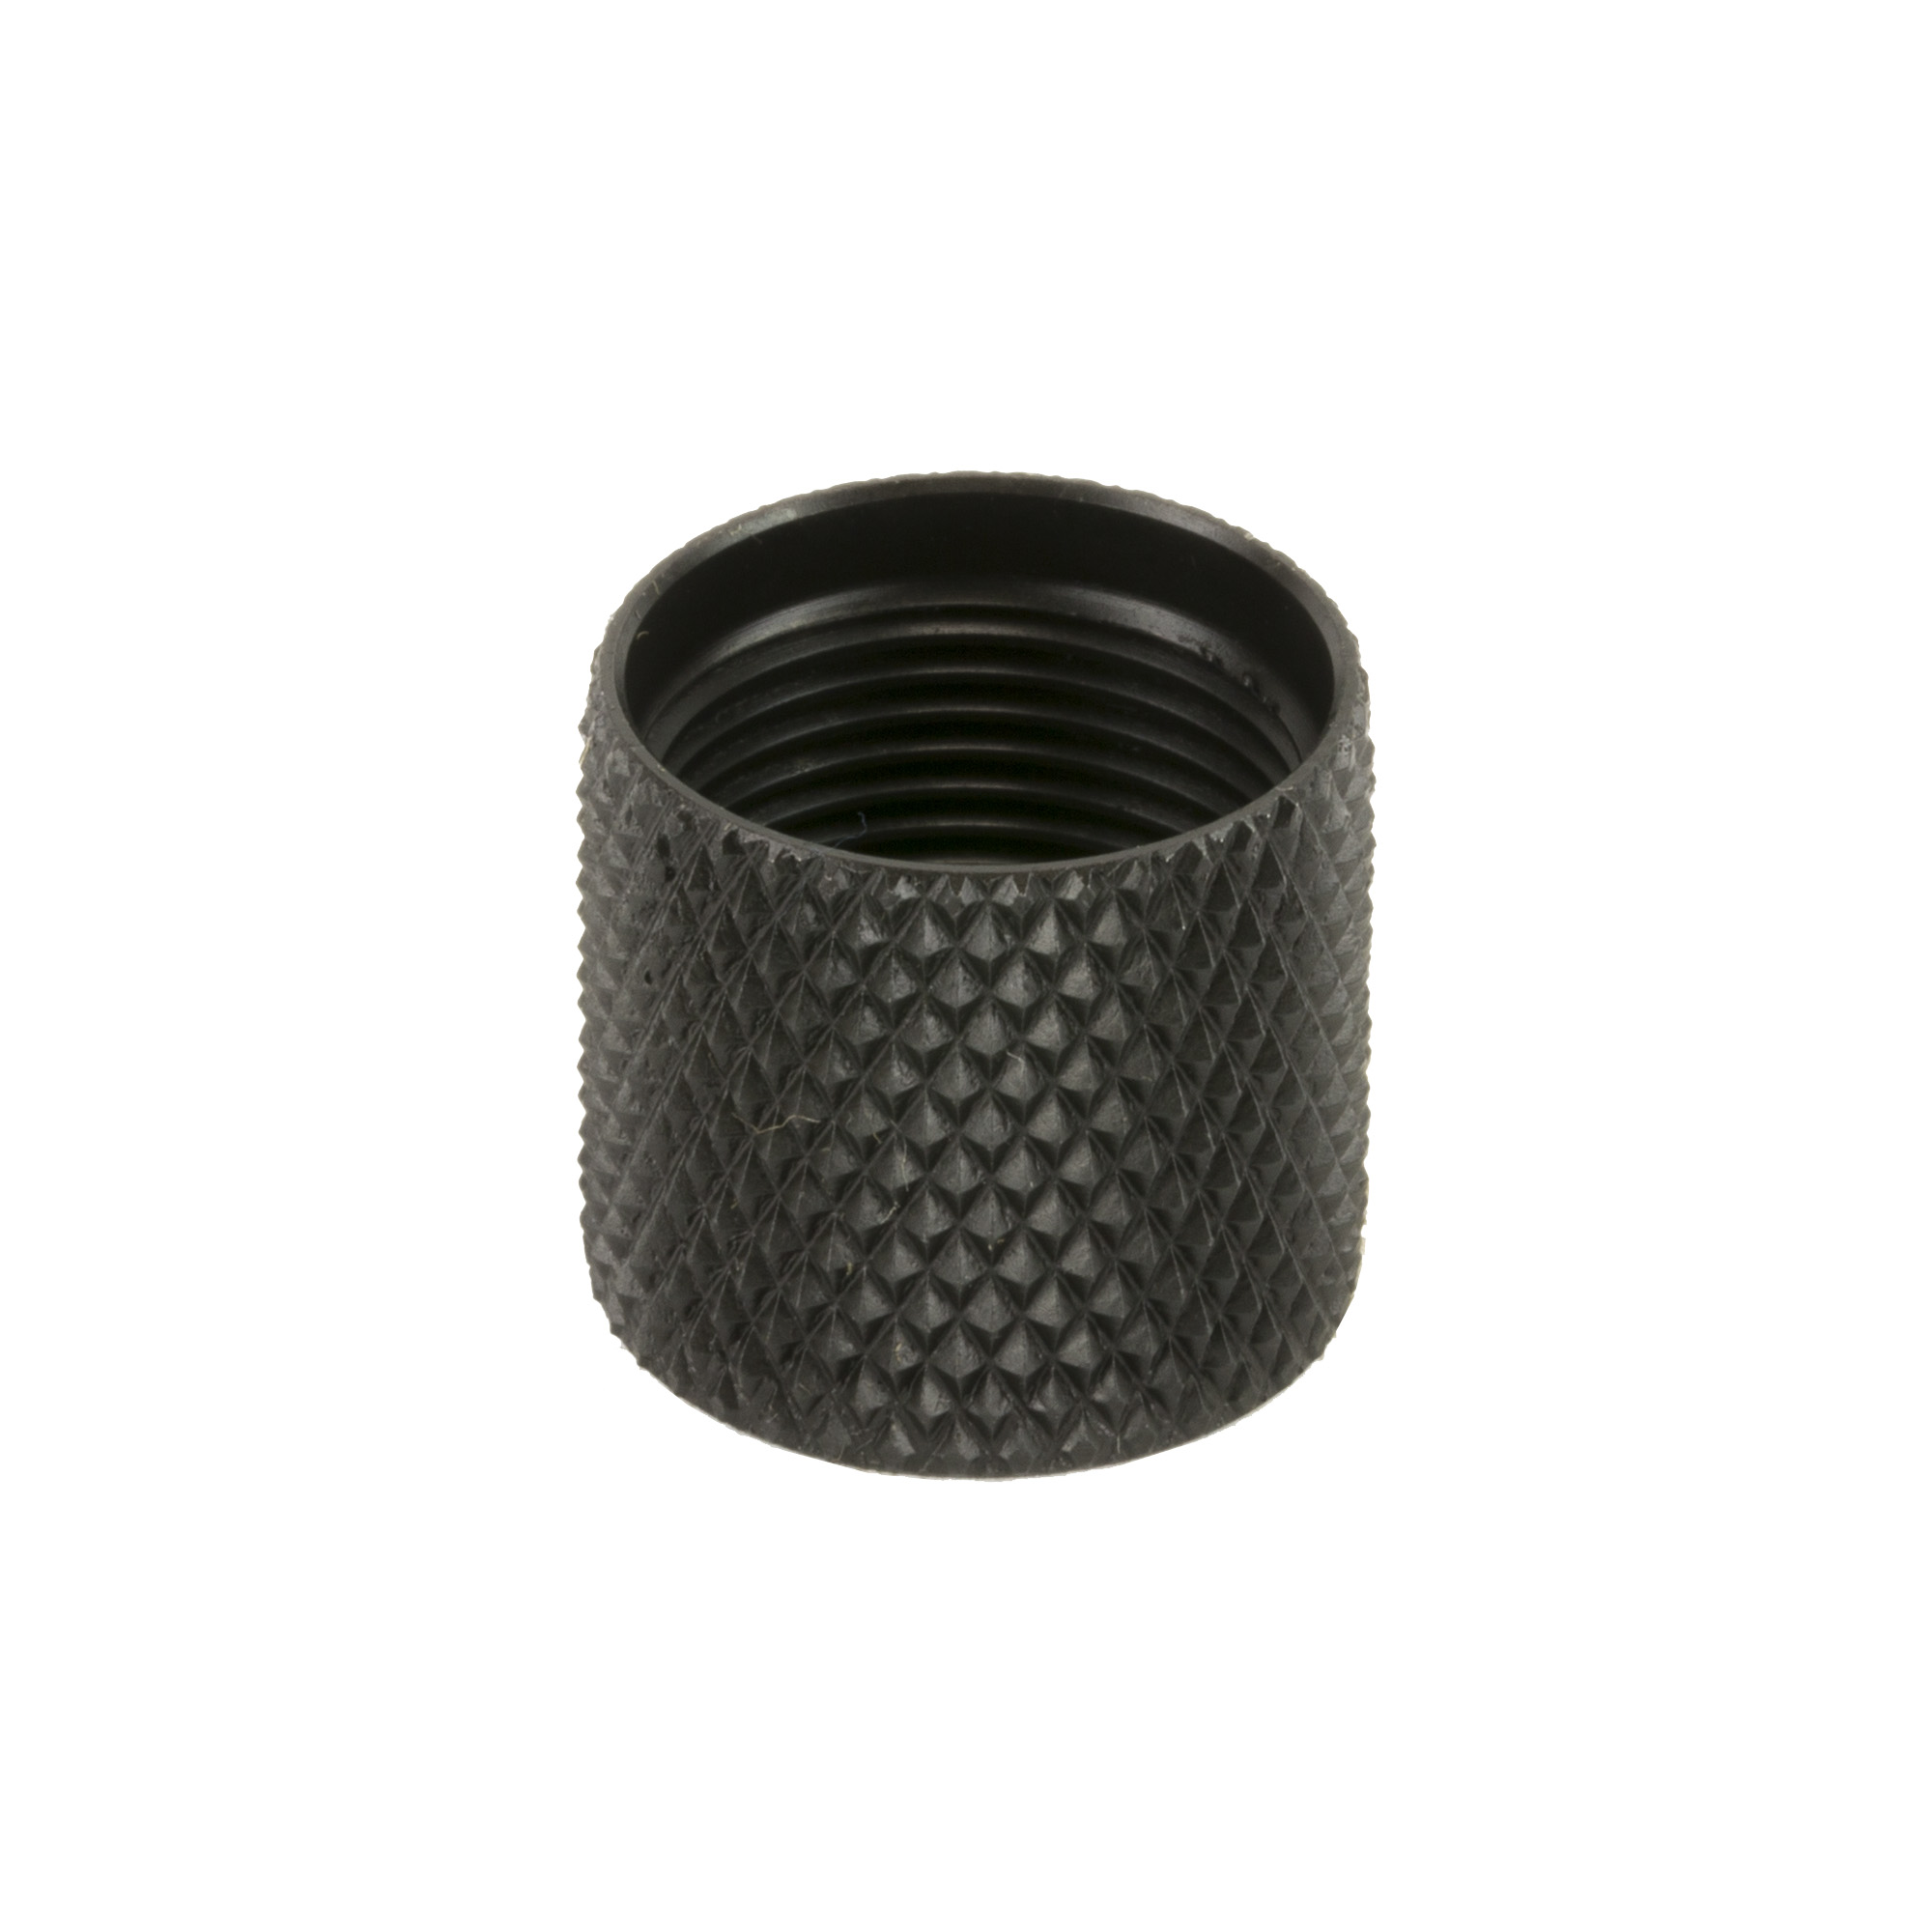 These steel thread protectors will prevent damage to the threads of your rifle barrel when a muzzle device is not installed.